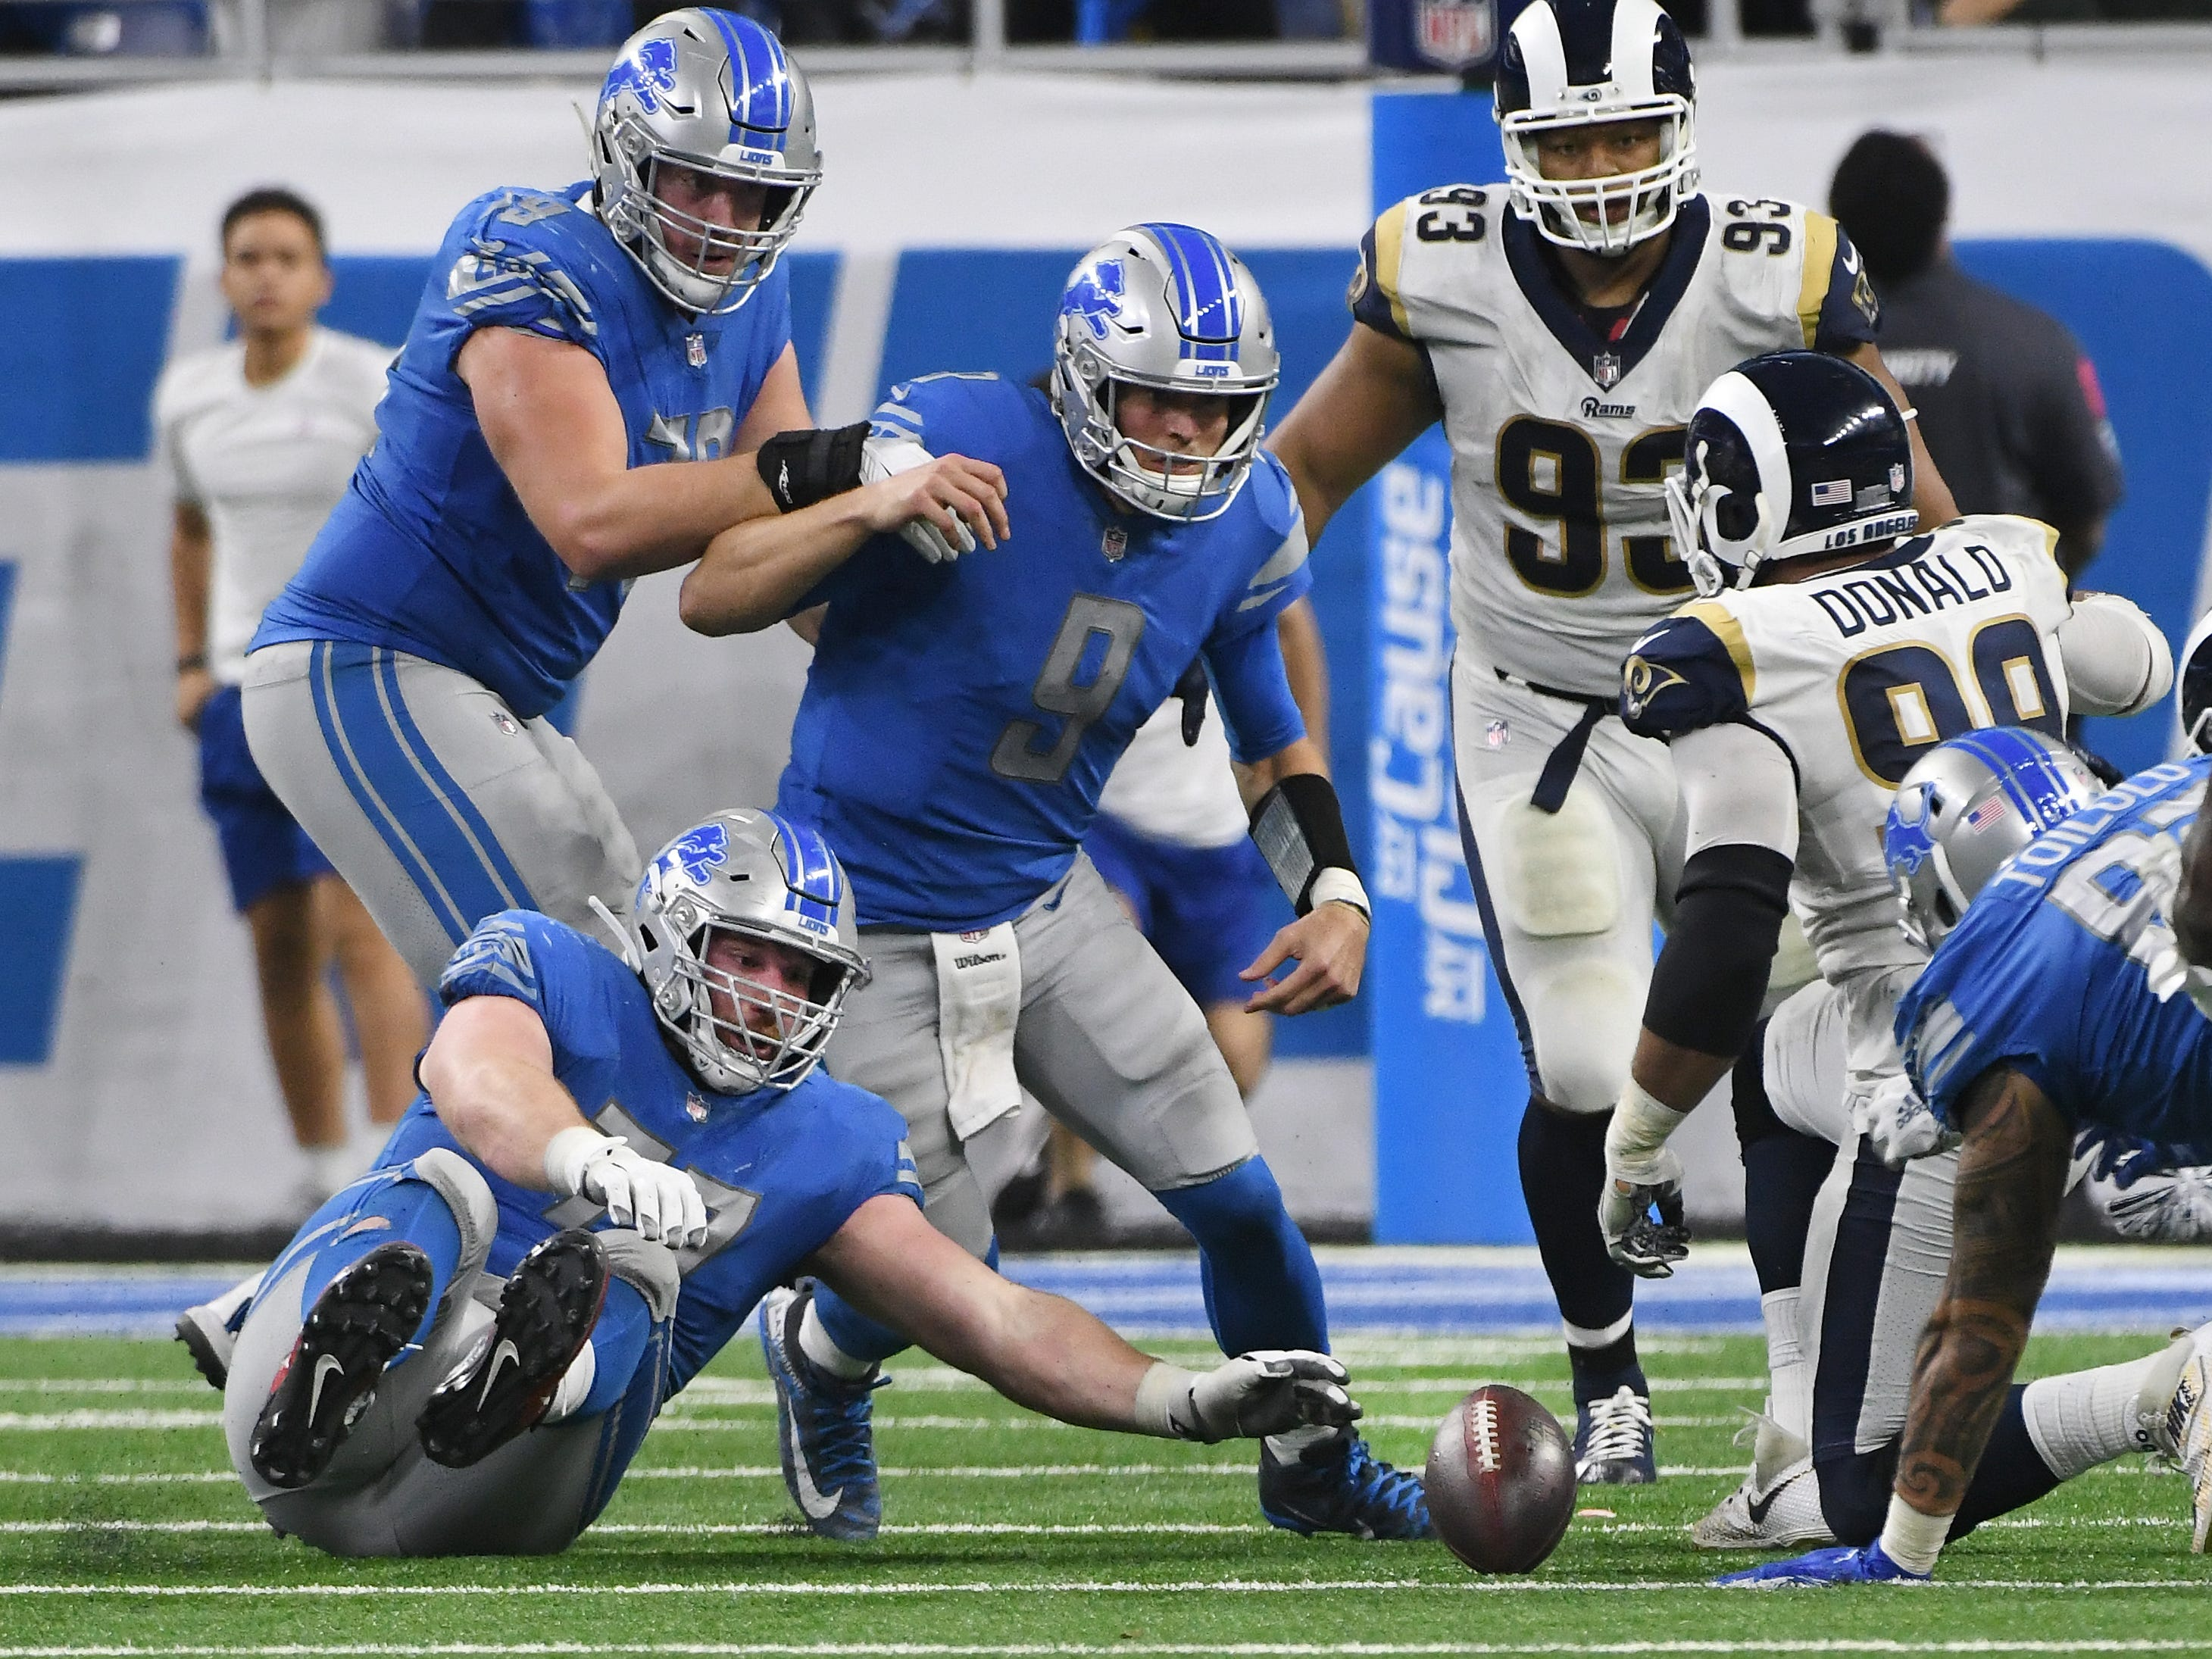 The Lions' Frank Ragnow and Matthew Stafford see Staffords fumbled football but can't get to it with the Rams recovering in the fourth quarter.